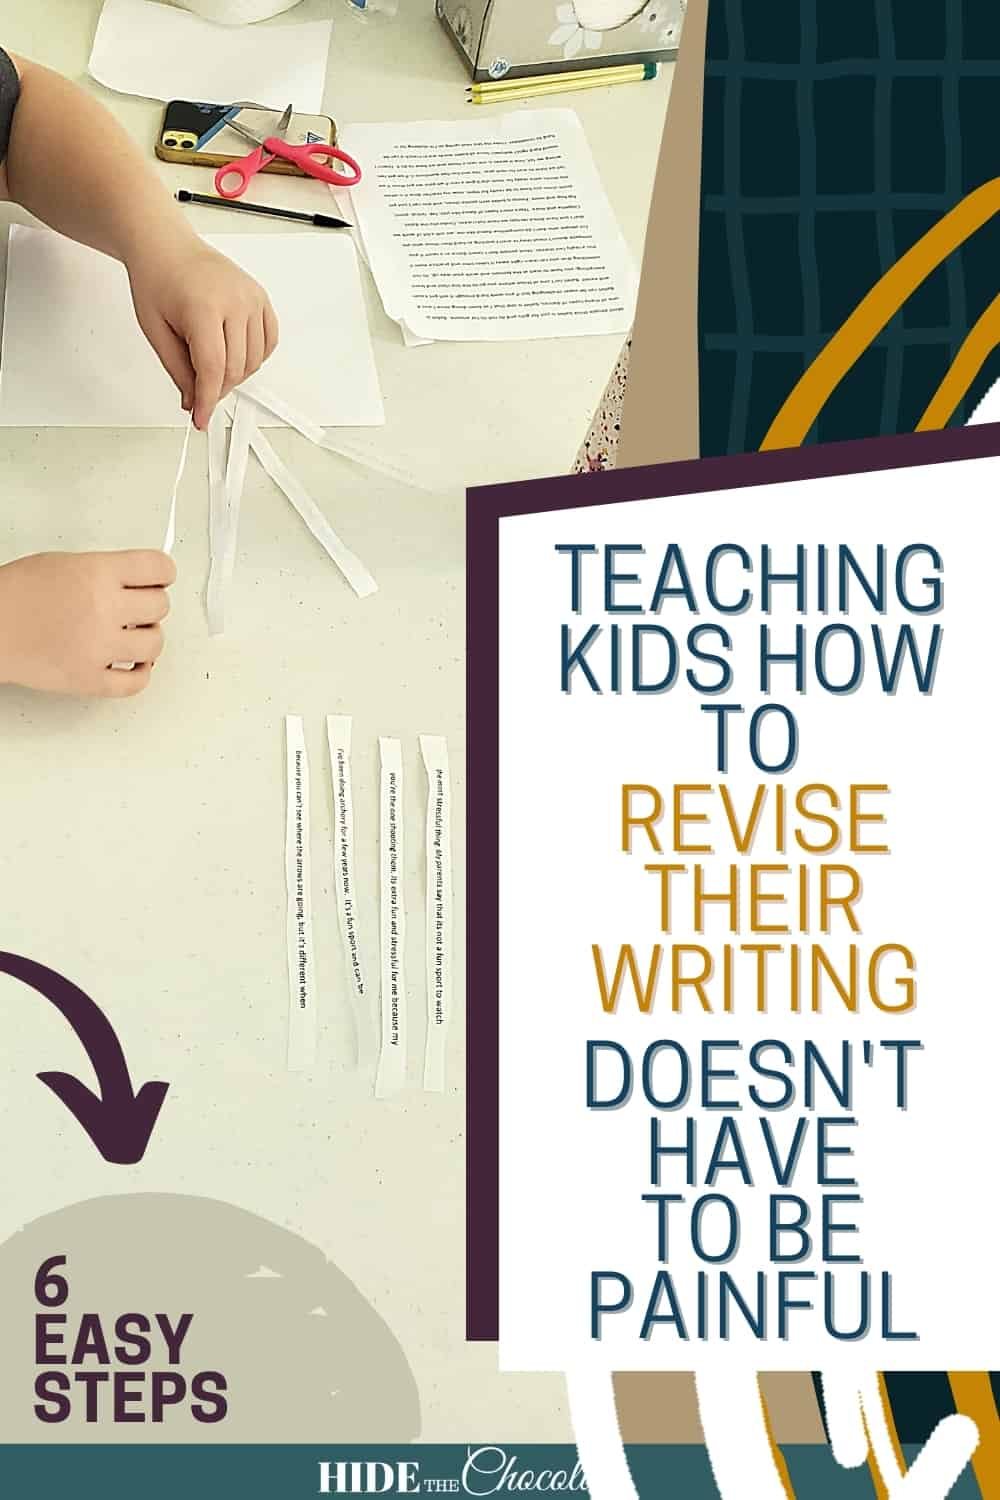 Teaching Kids How To Revise Their Writing Doesn't Have To Be Painful (It Can Actually Be Fun!)